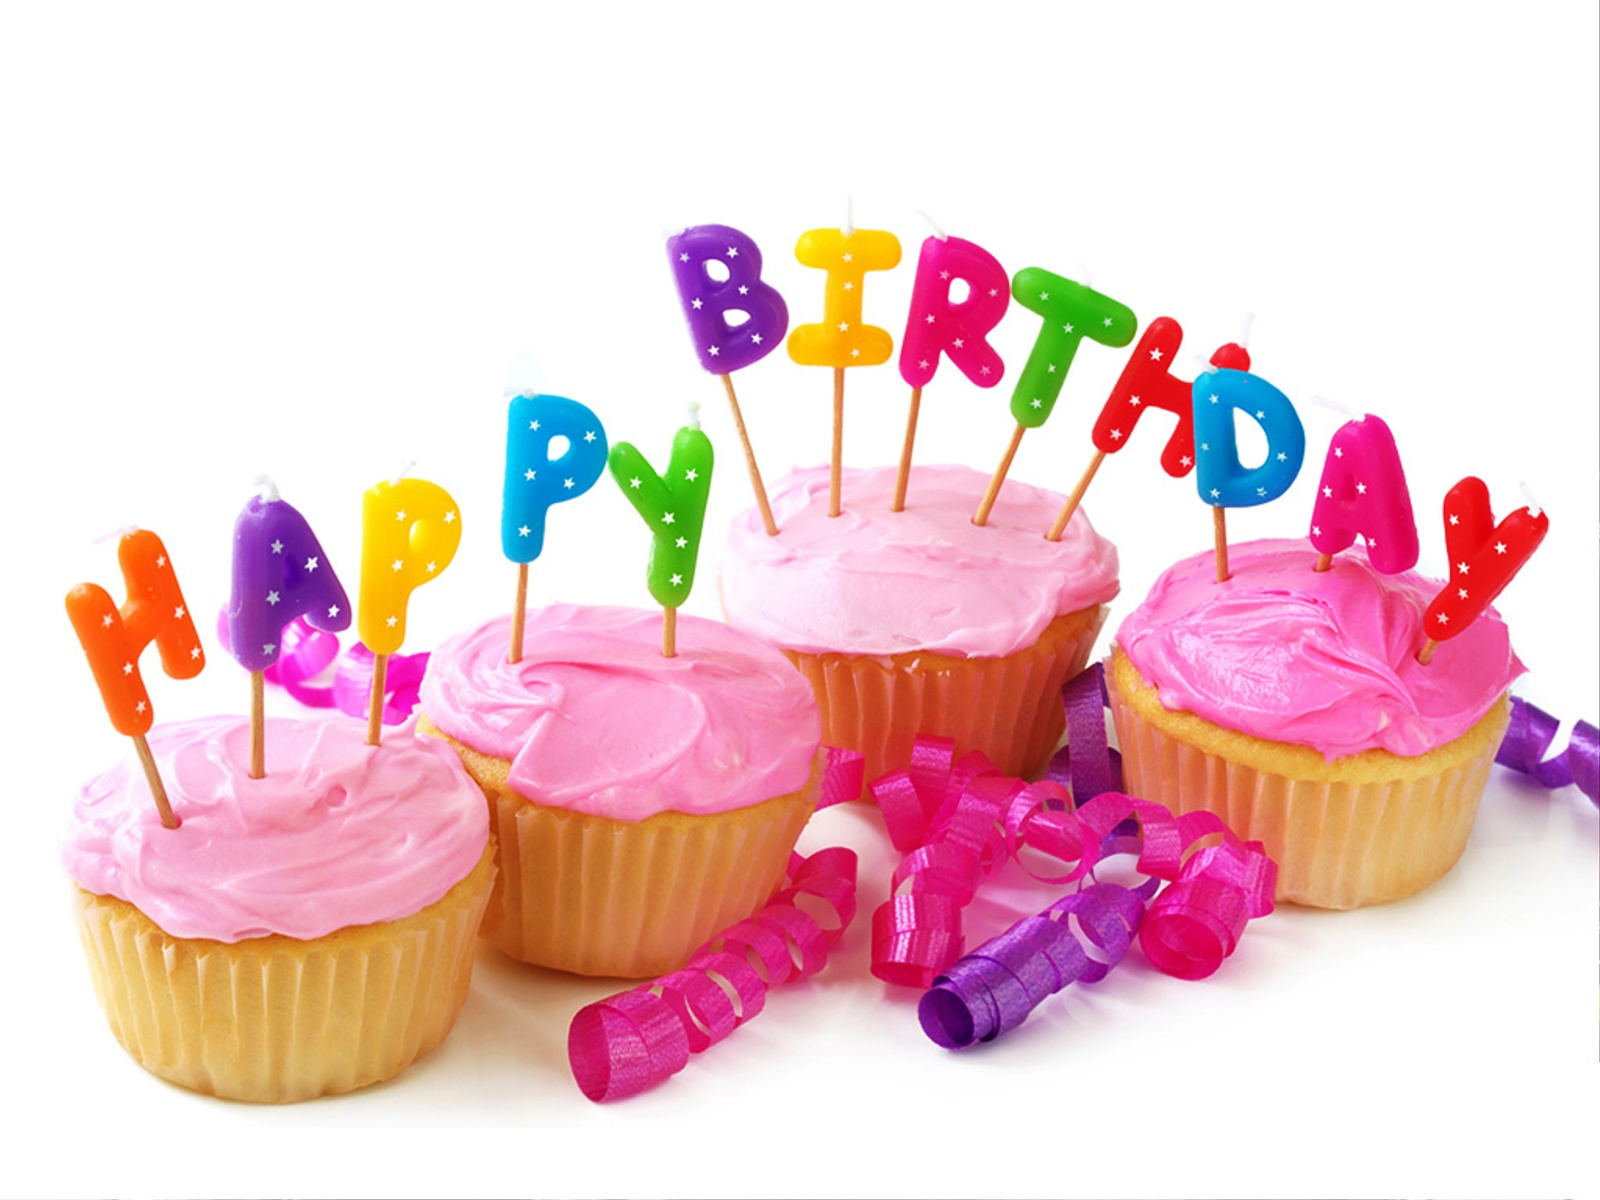 Free Birthday Pictures ~ List of birthday freebies meredith rines